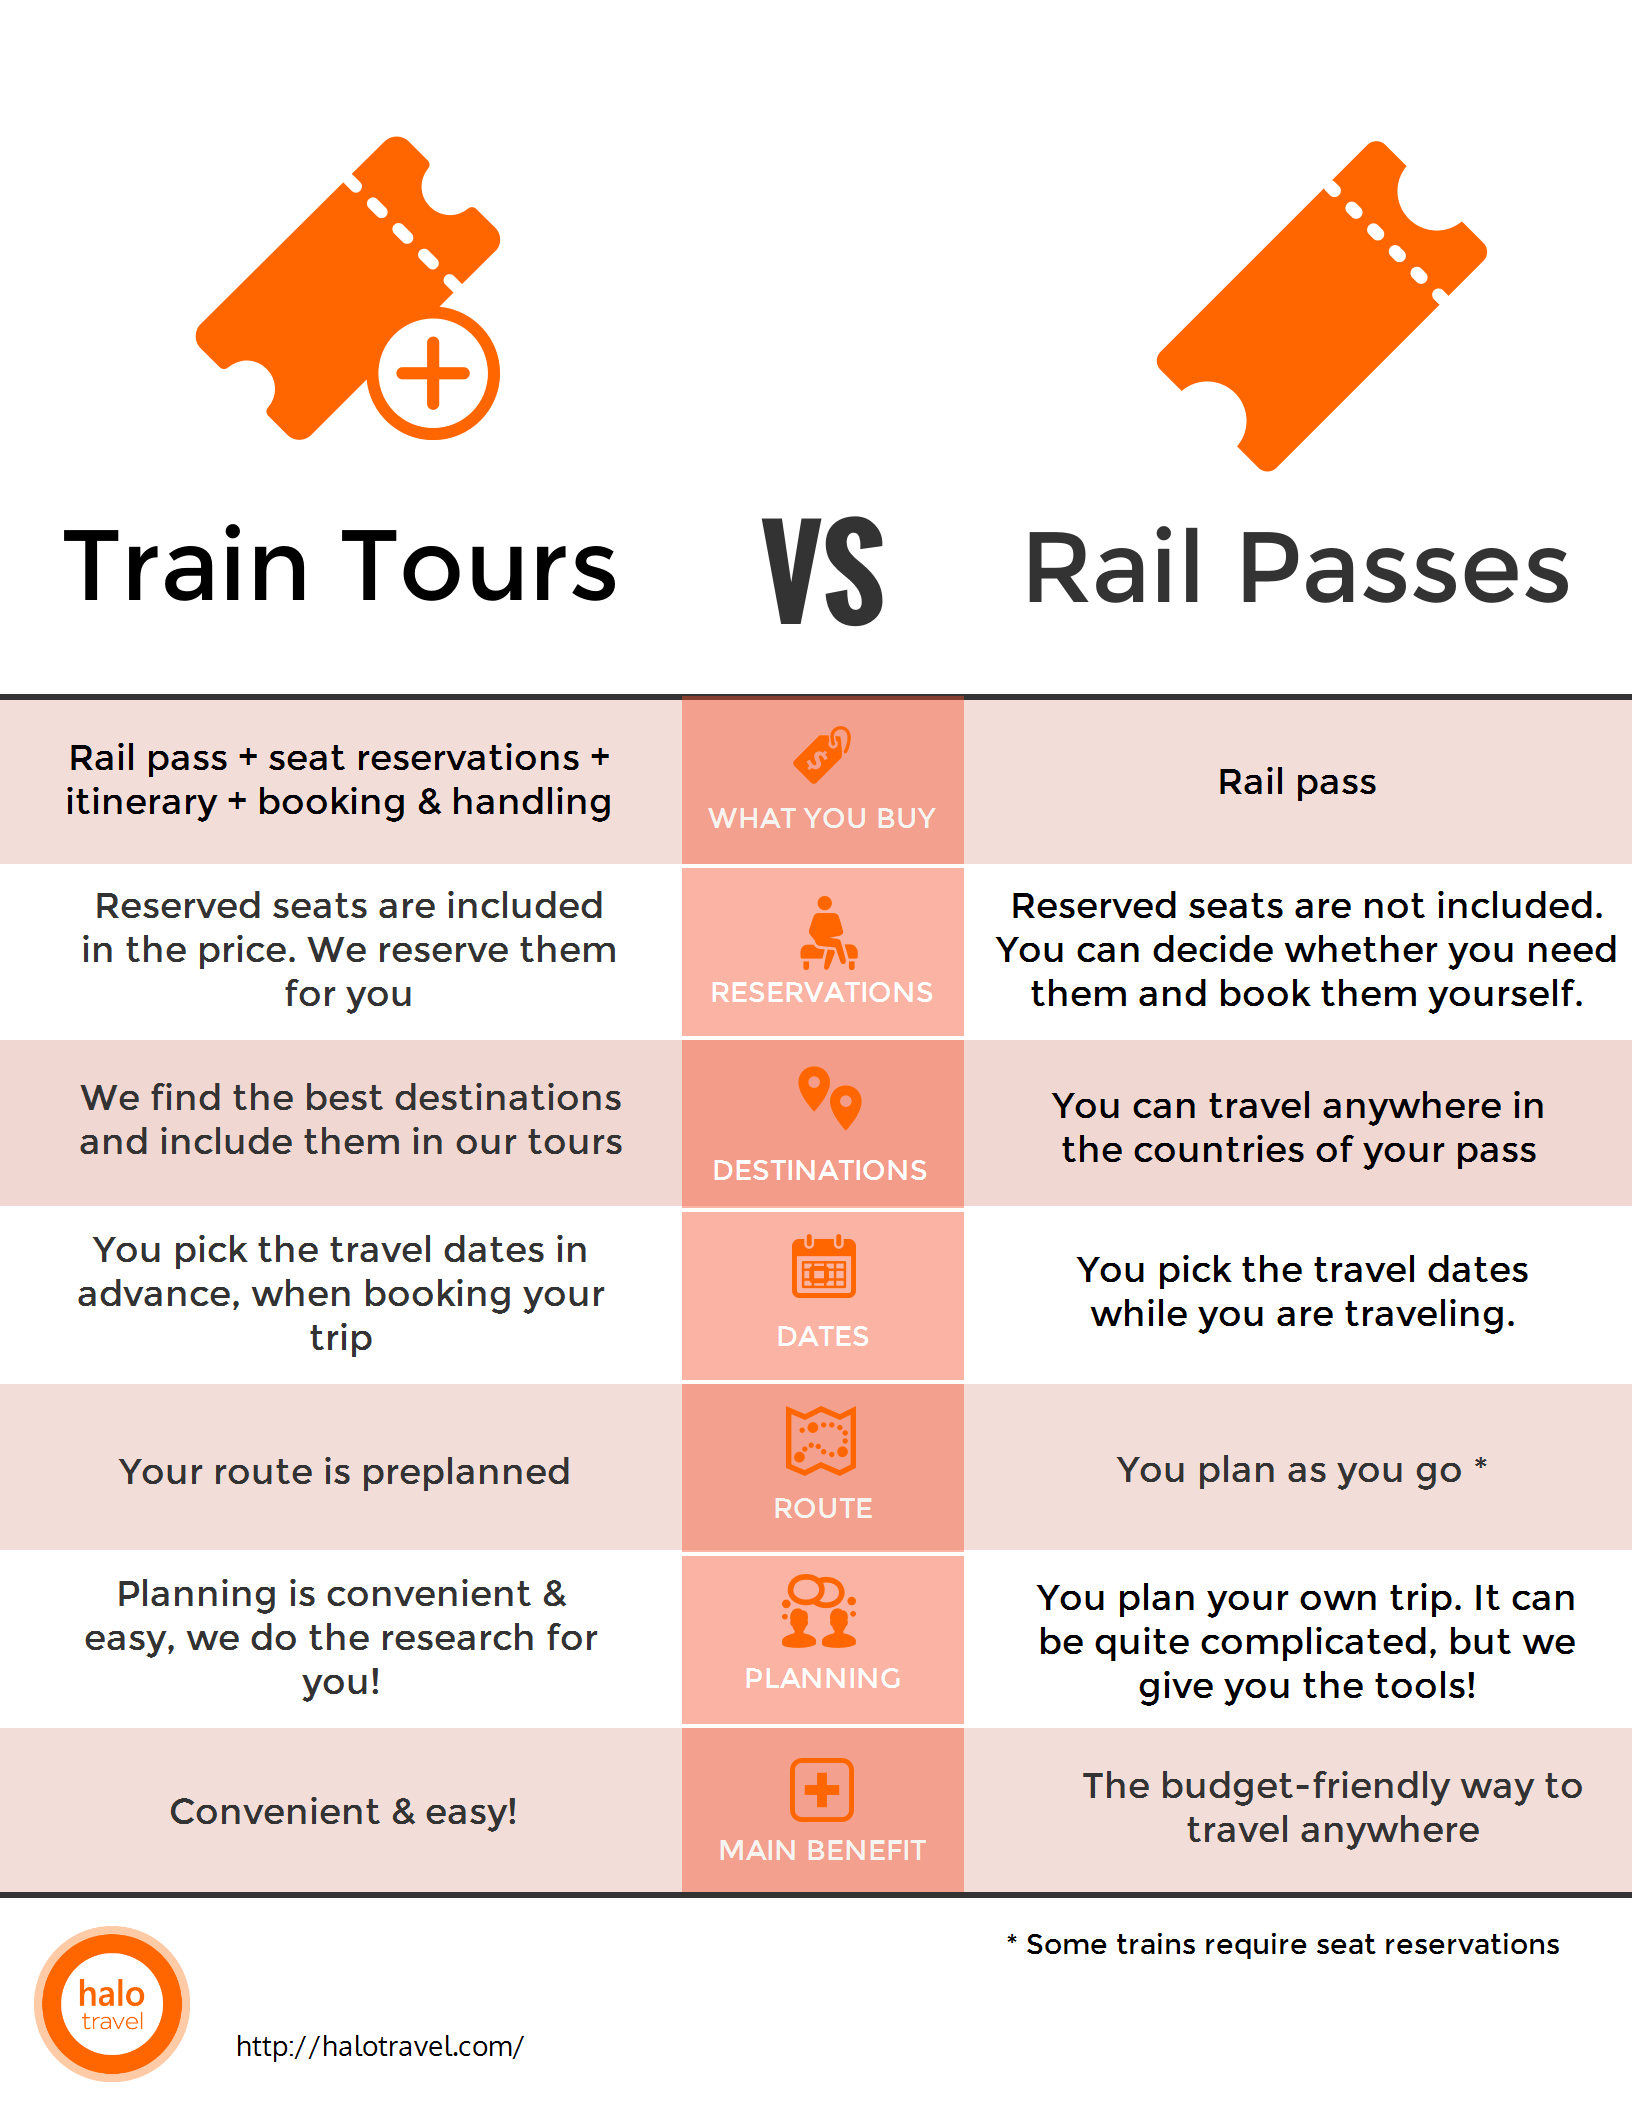 Halo Travel sells train tours as well as rail passes. Find out which is best for you with our comparison chart. Halo Travel makes European rail travel easy!